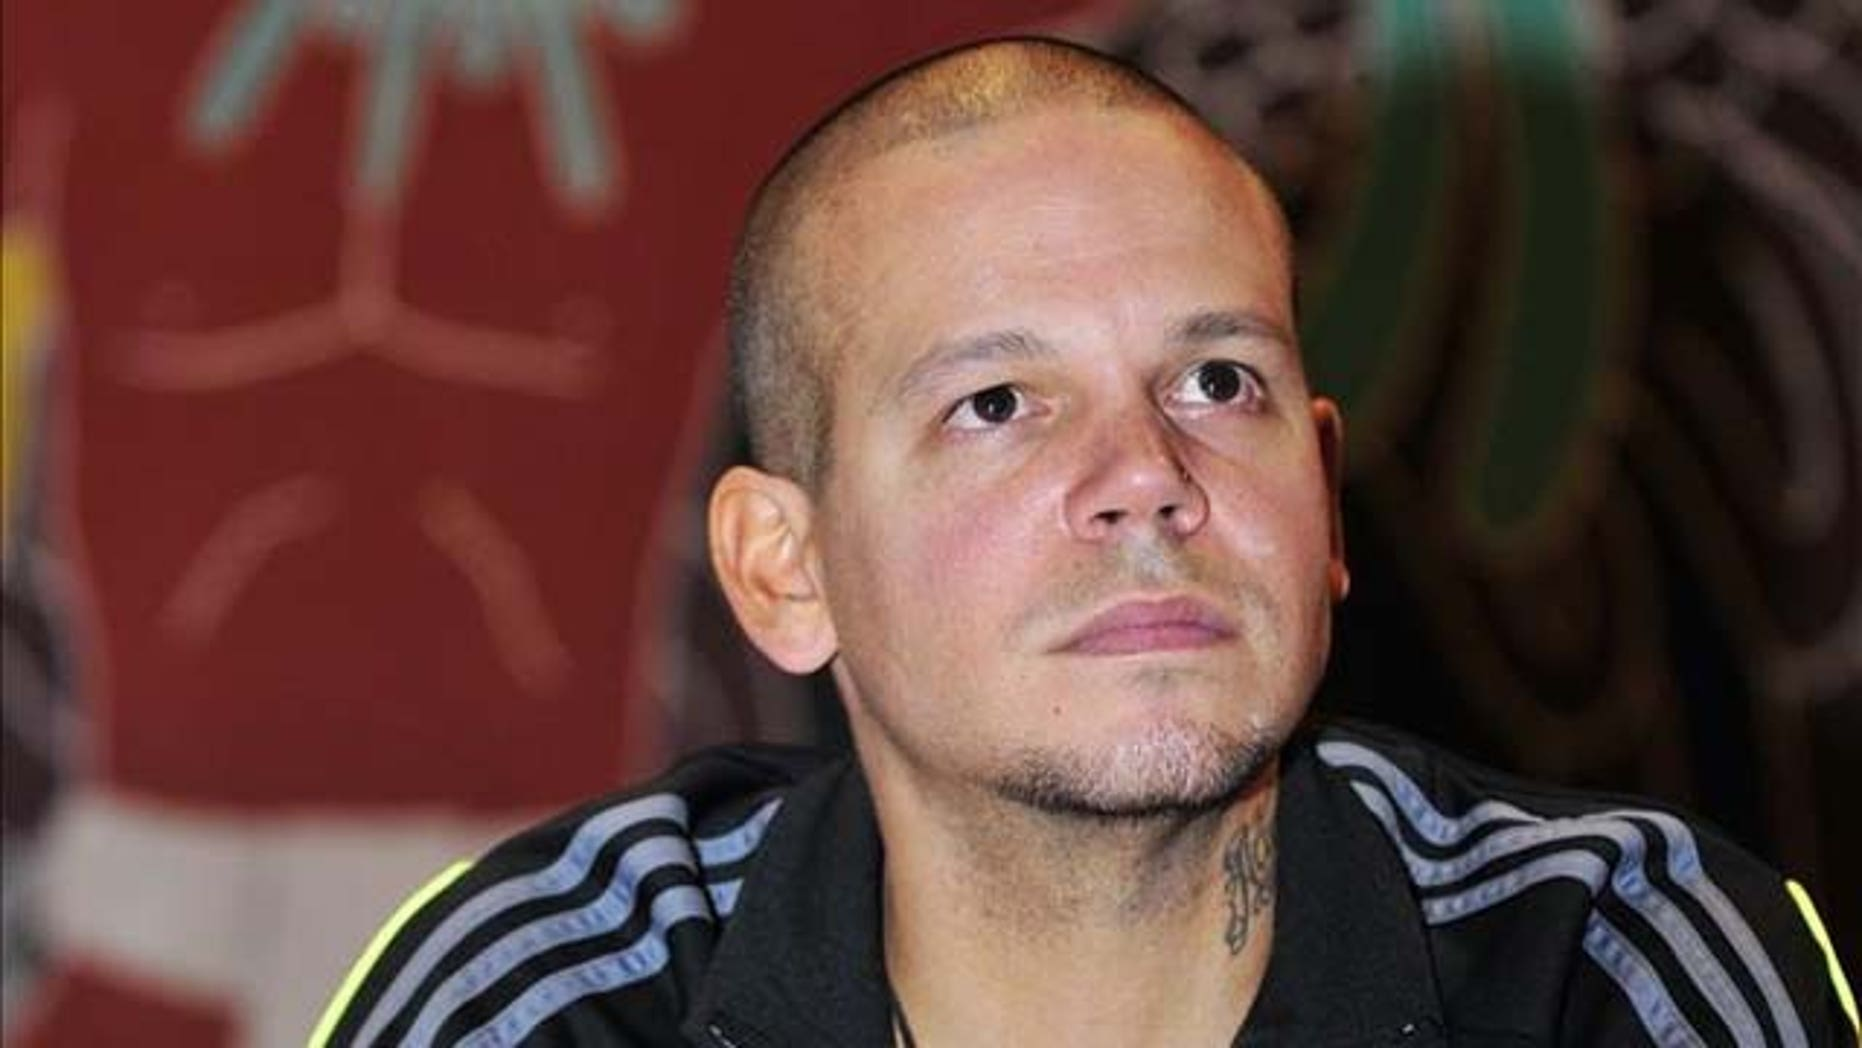 Sept. 28, 2011: Rene Perez, a.k.a. Residente, takes part in the Dialogue for Latin America at the National Autonomous University of Mexico.